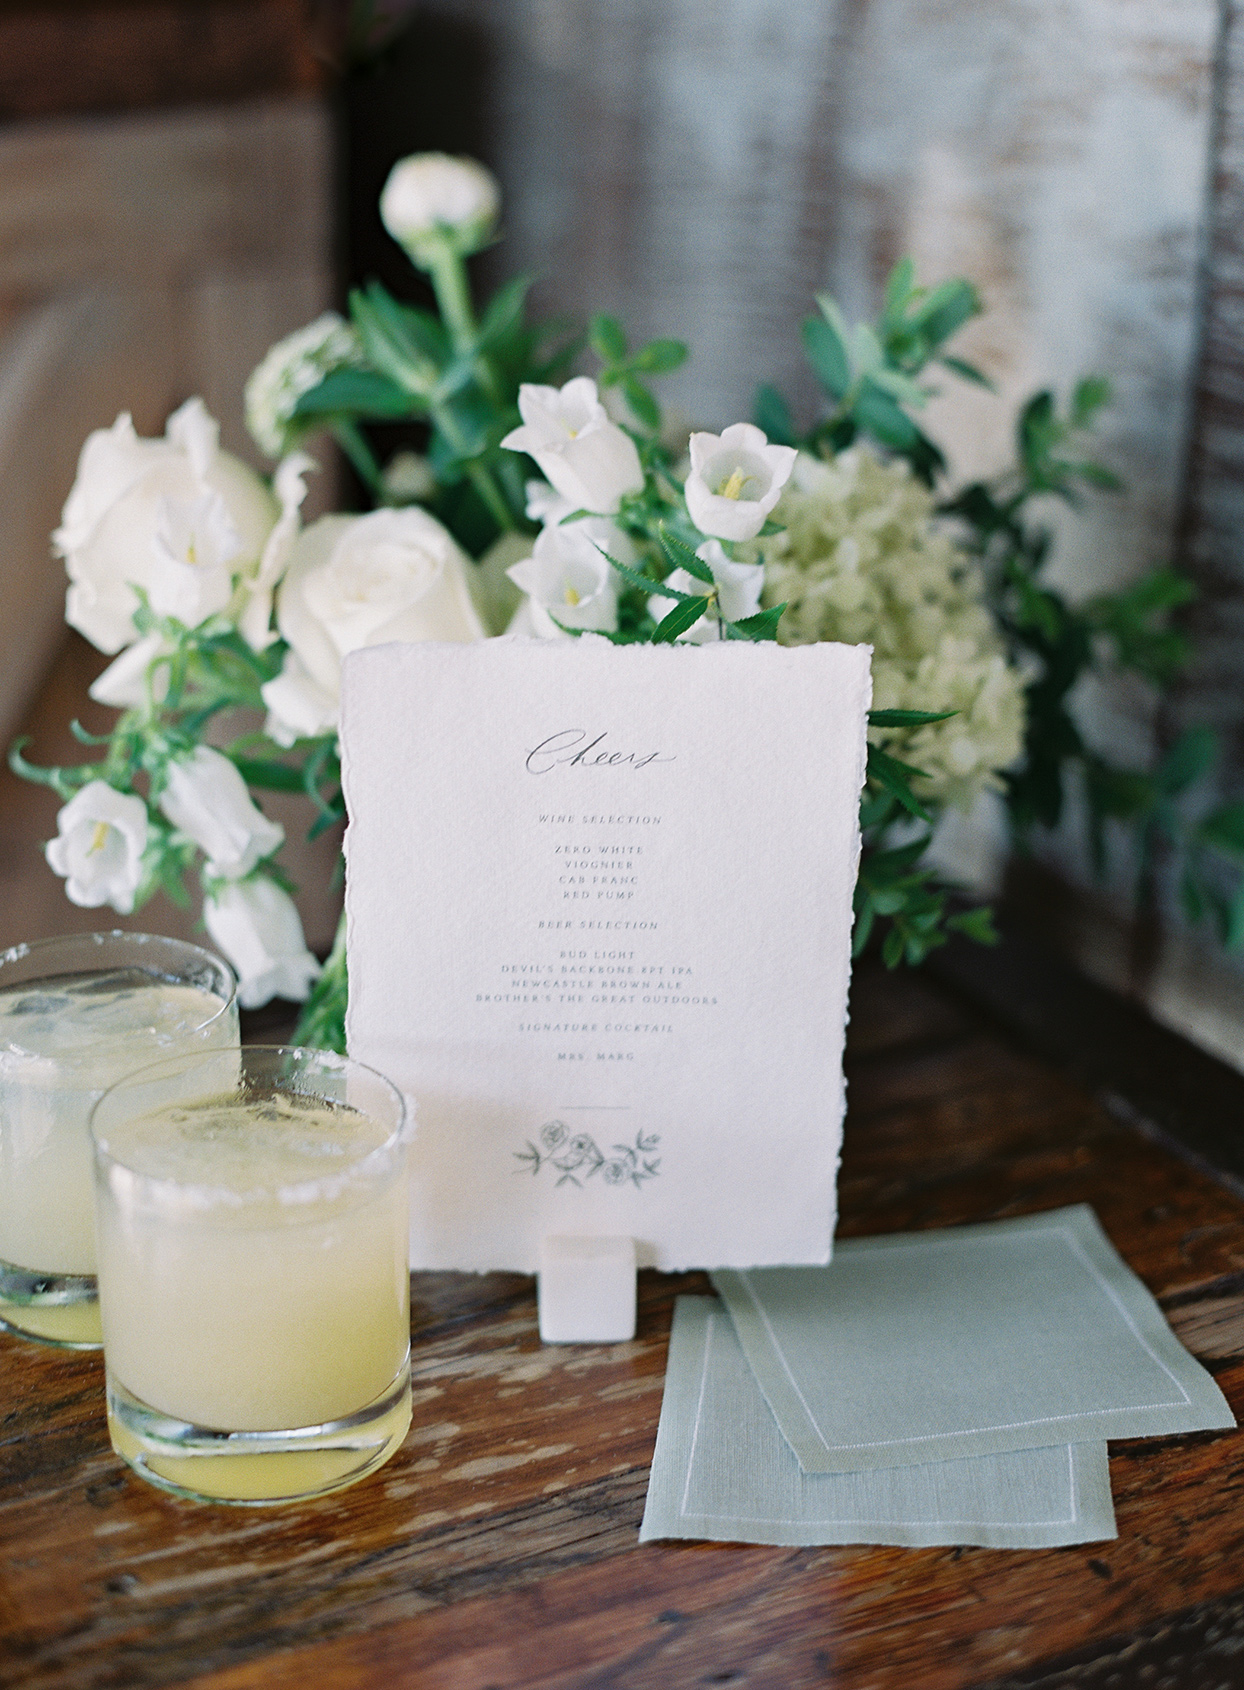 wedding cocktails next to sign and flowers